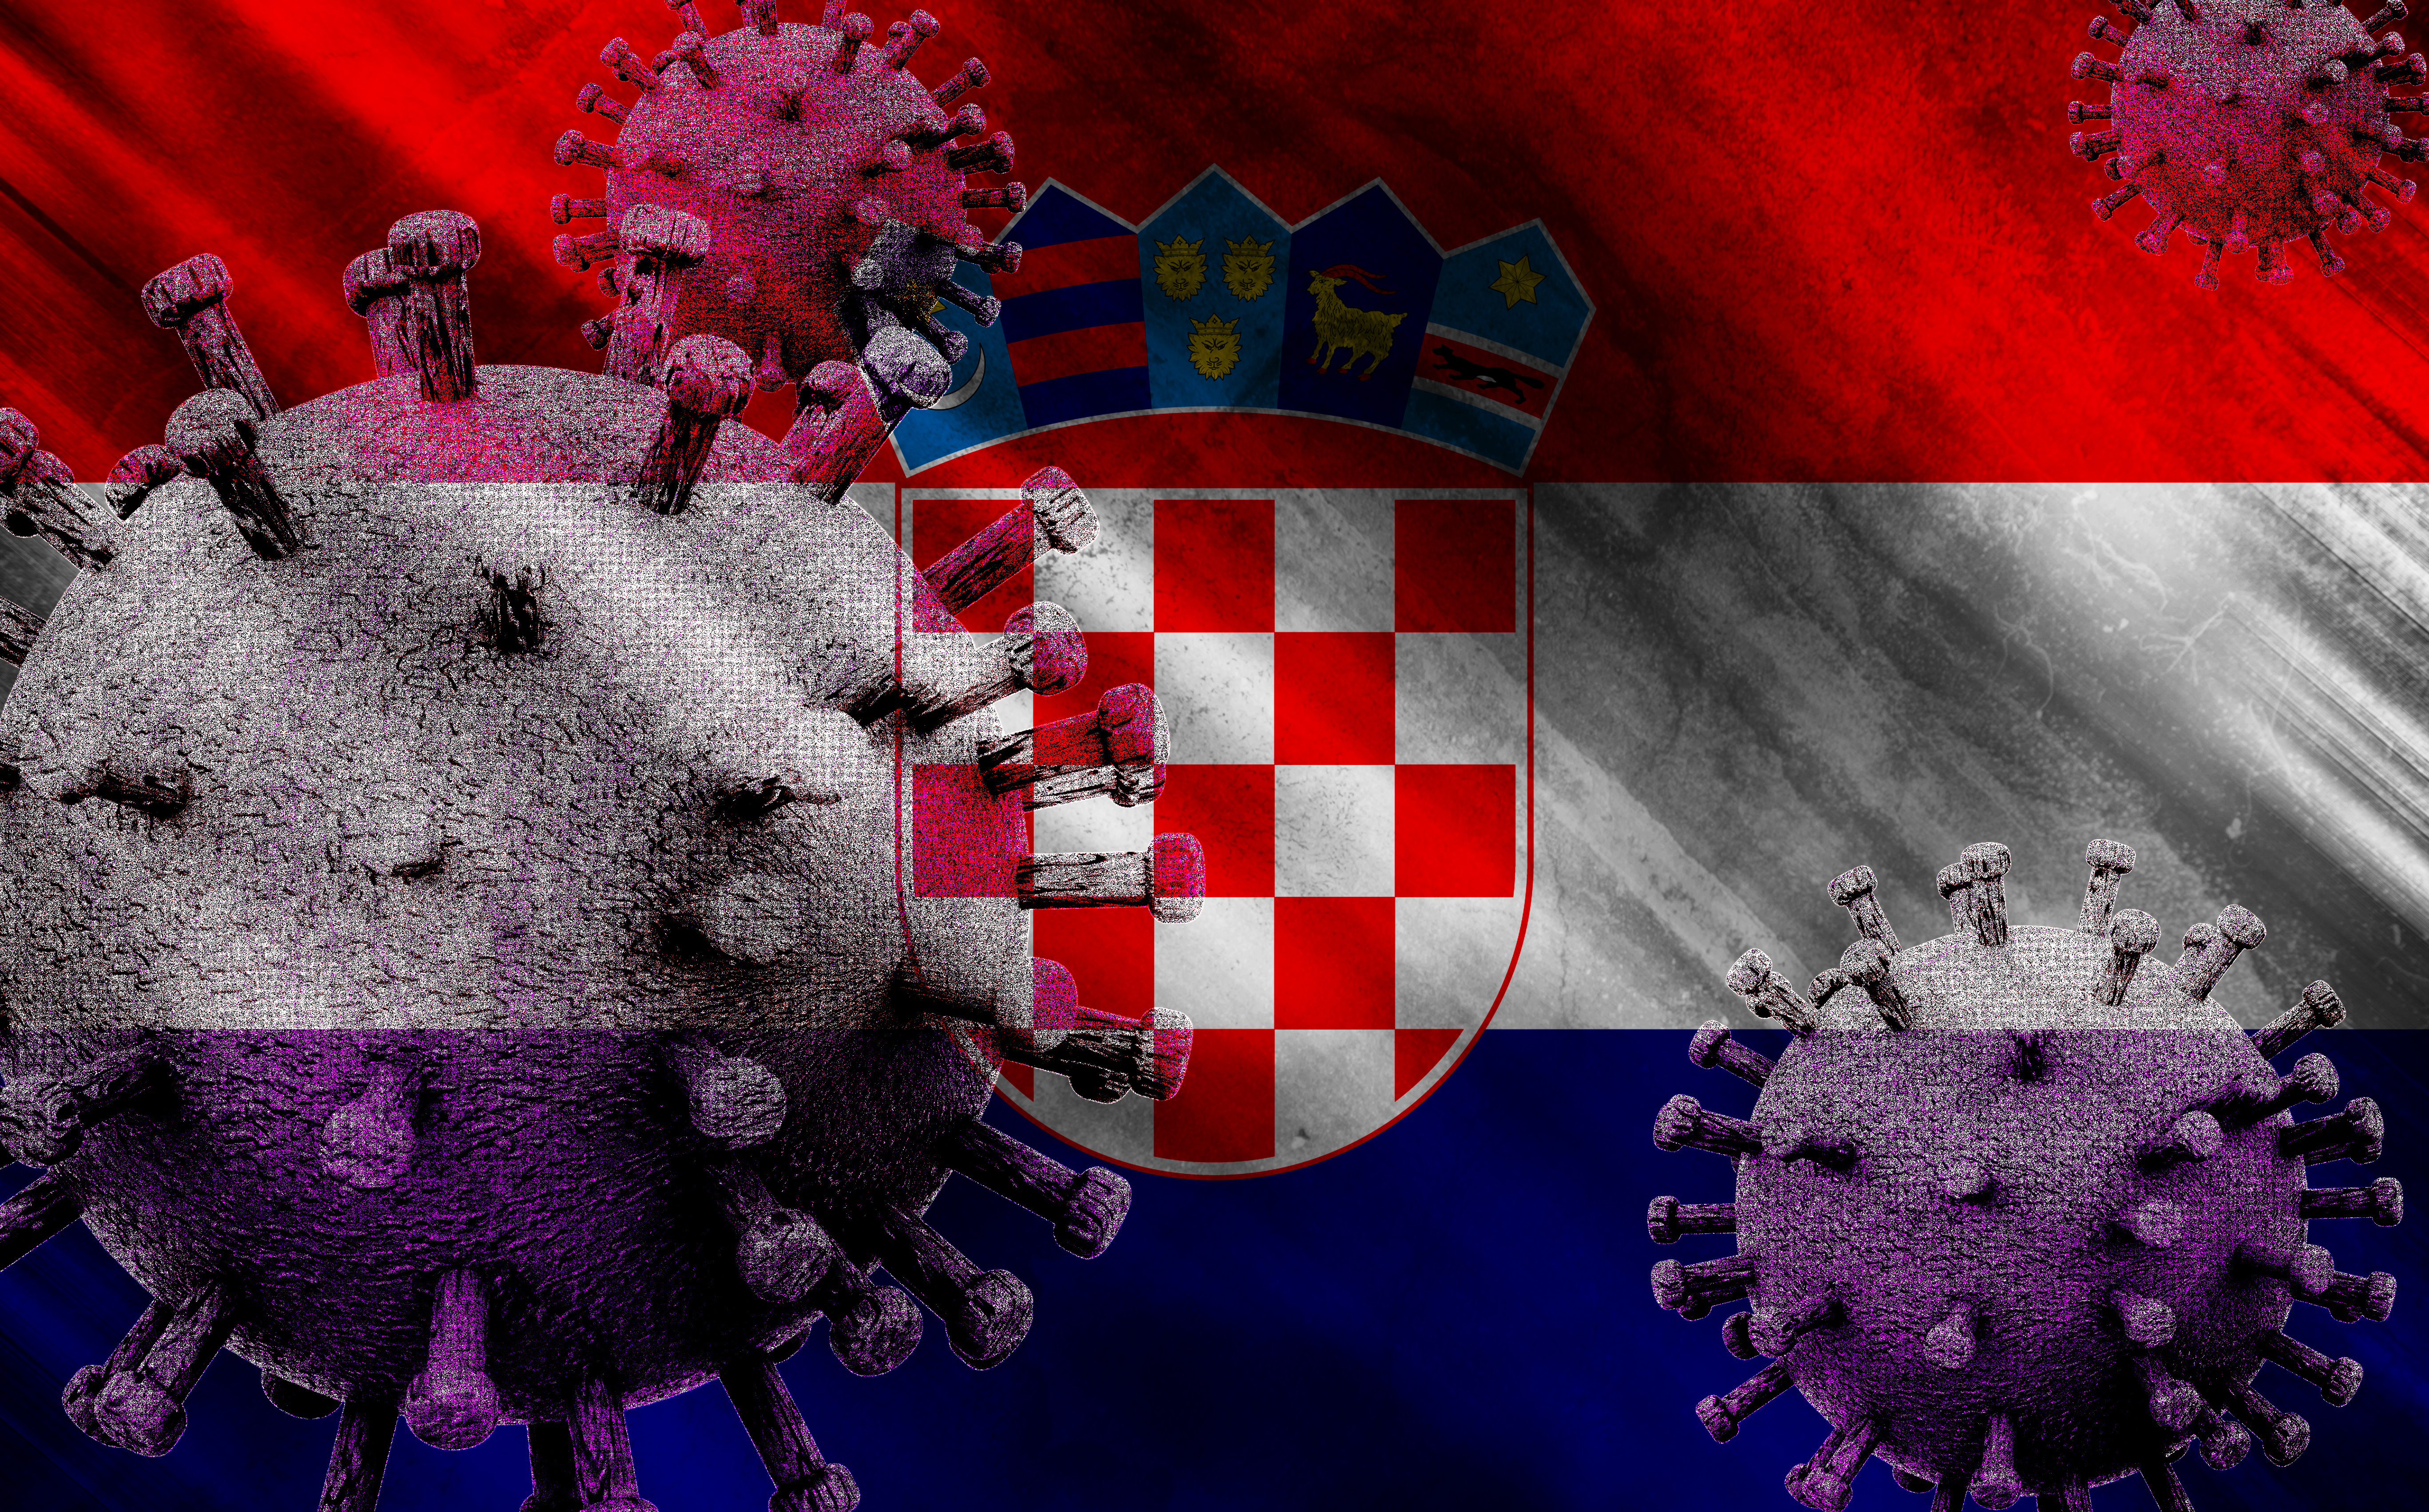 Croatia: suffering like other European tourist destinations, hope for some controlled tourism